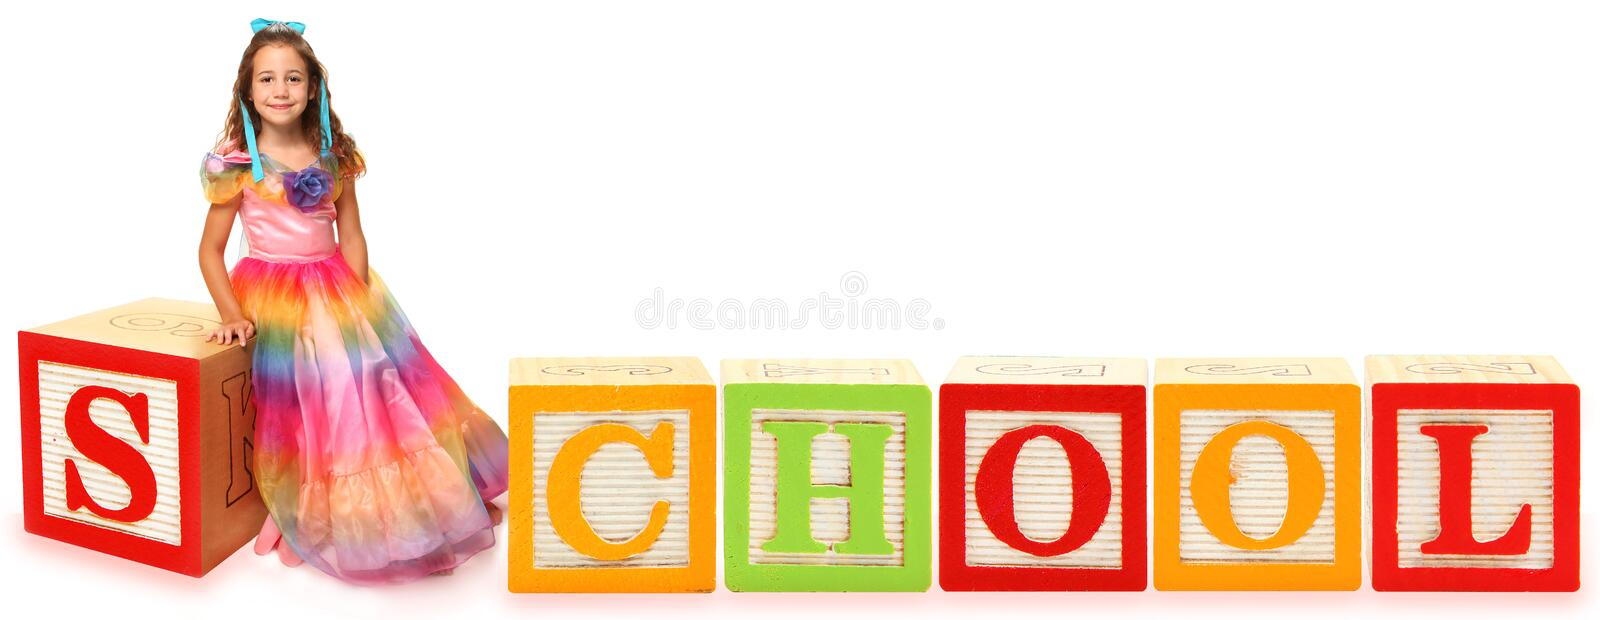 Alphabet Blocks School with Girl royalty free stock photo